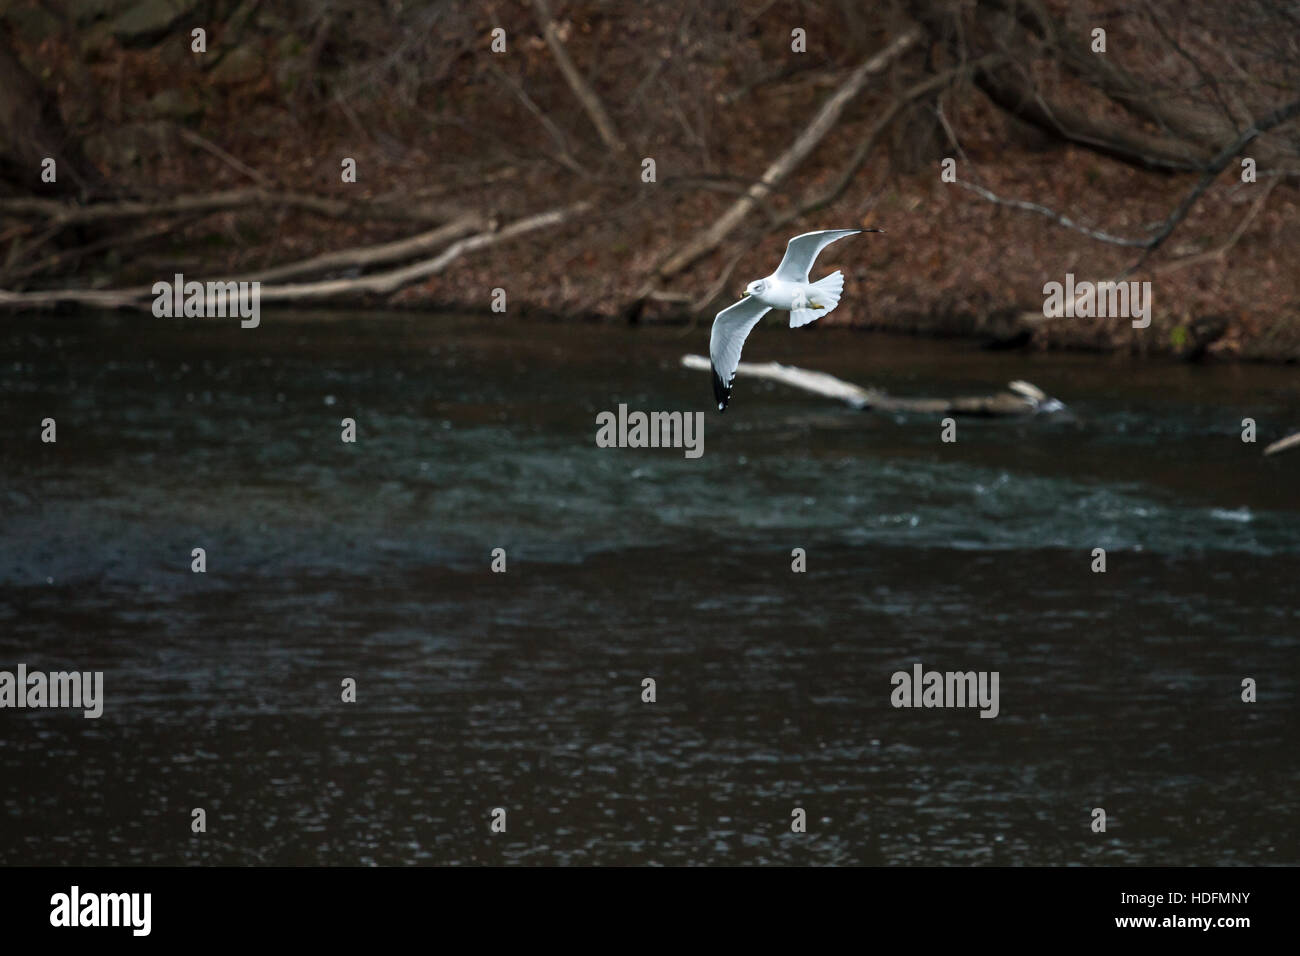 A common gull swoops low over a flowing river. - Stock Image